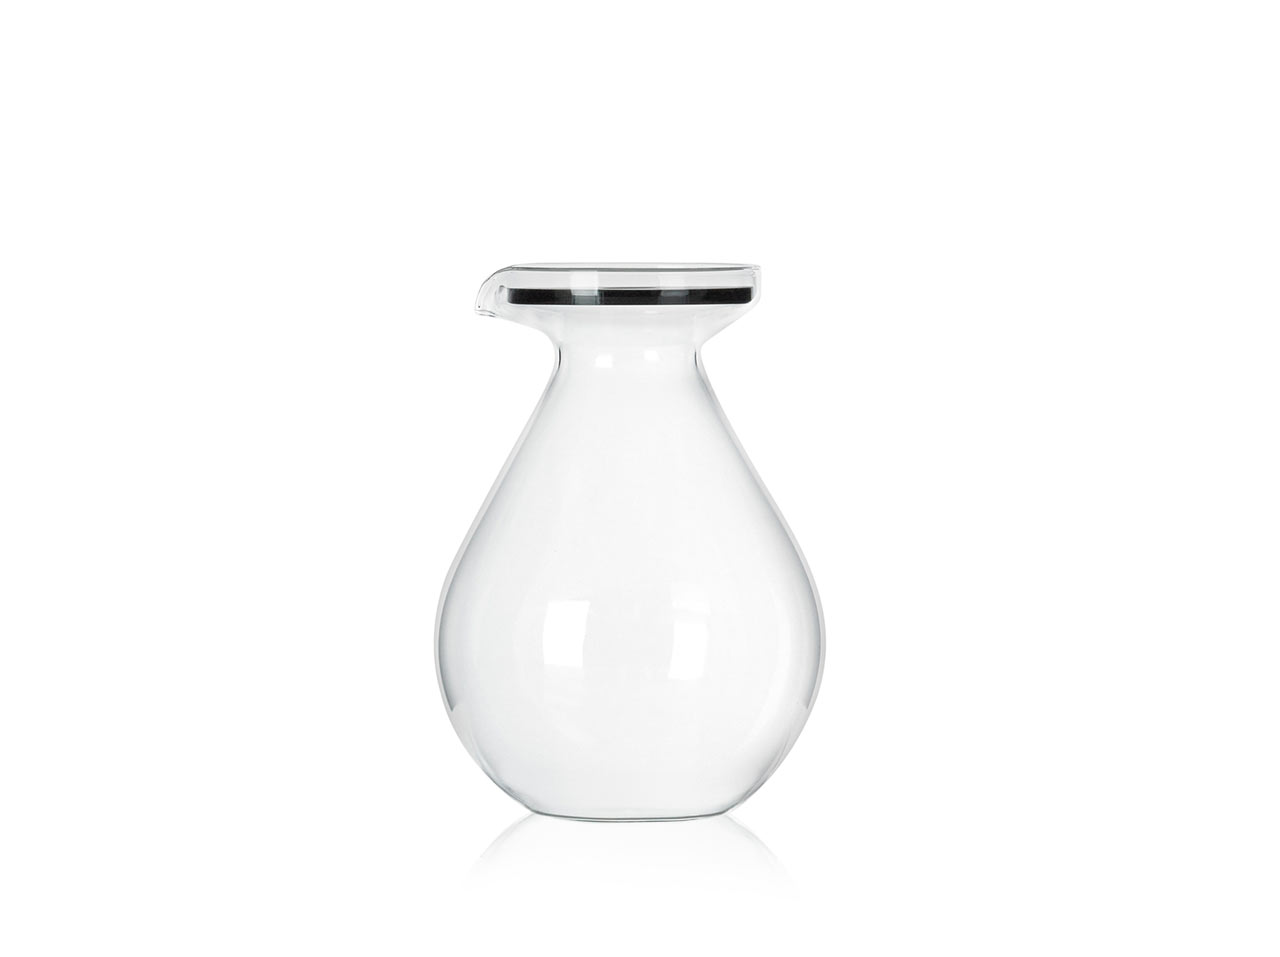 Drop Jug: A Glass Container for Everyday